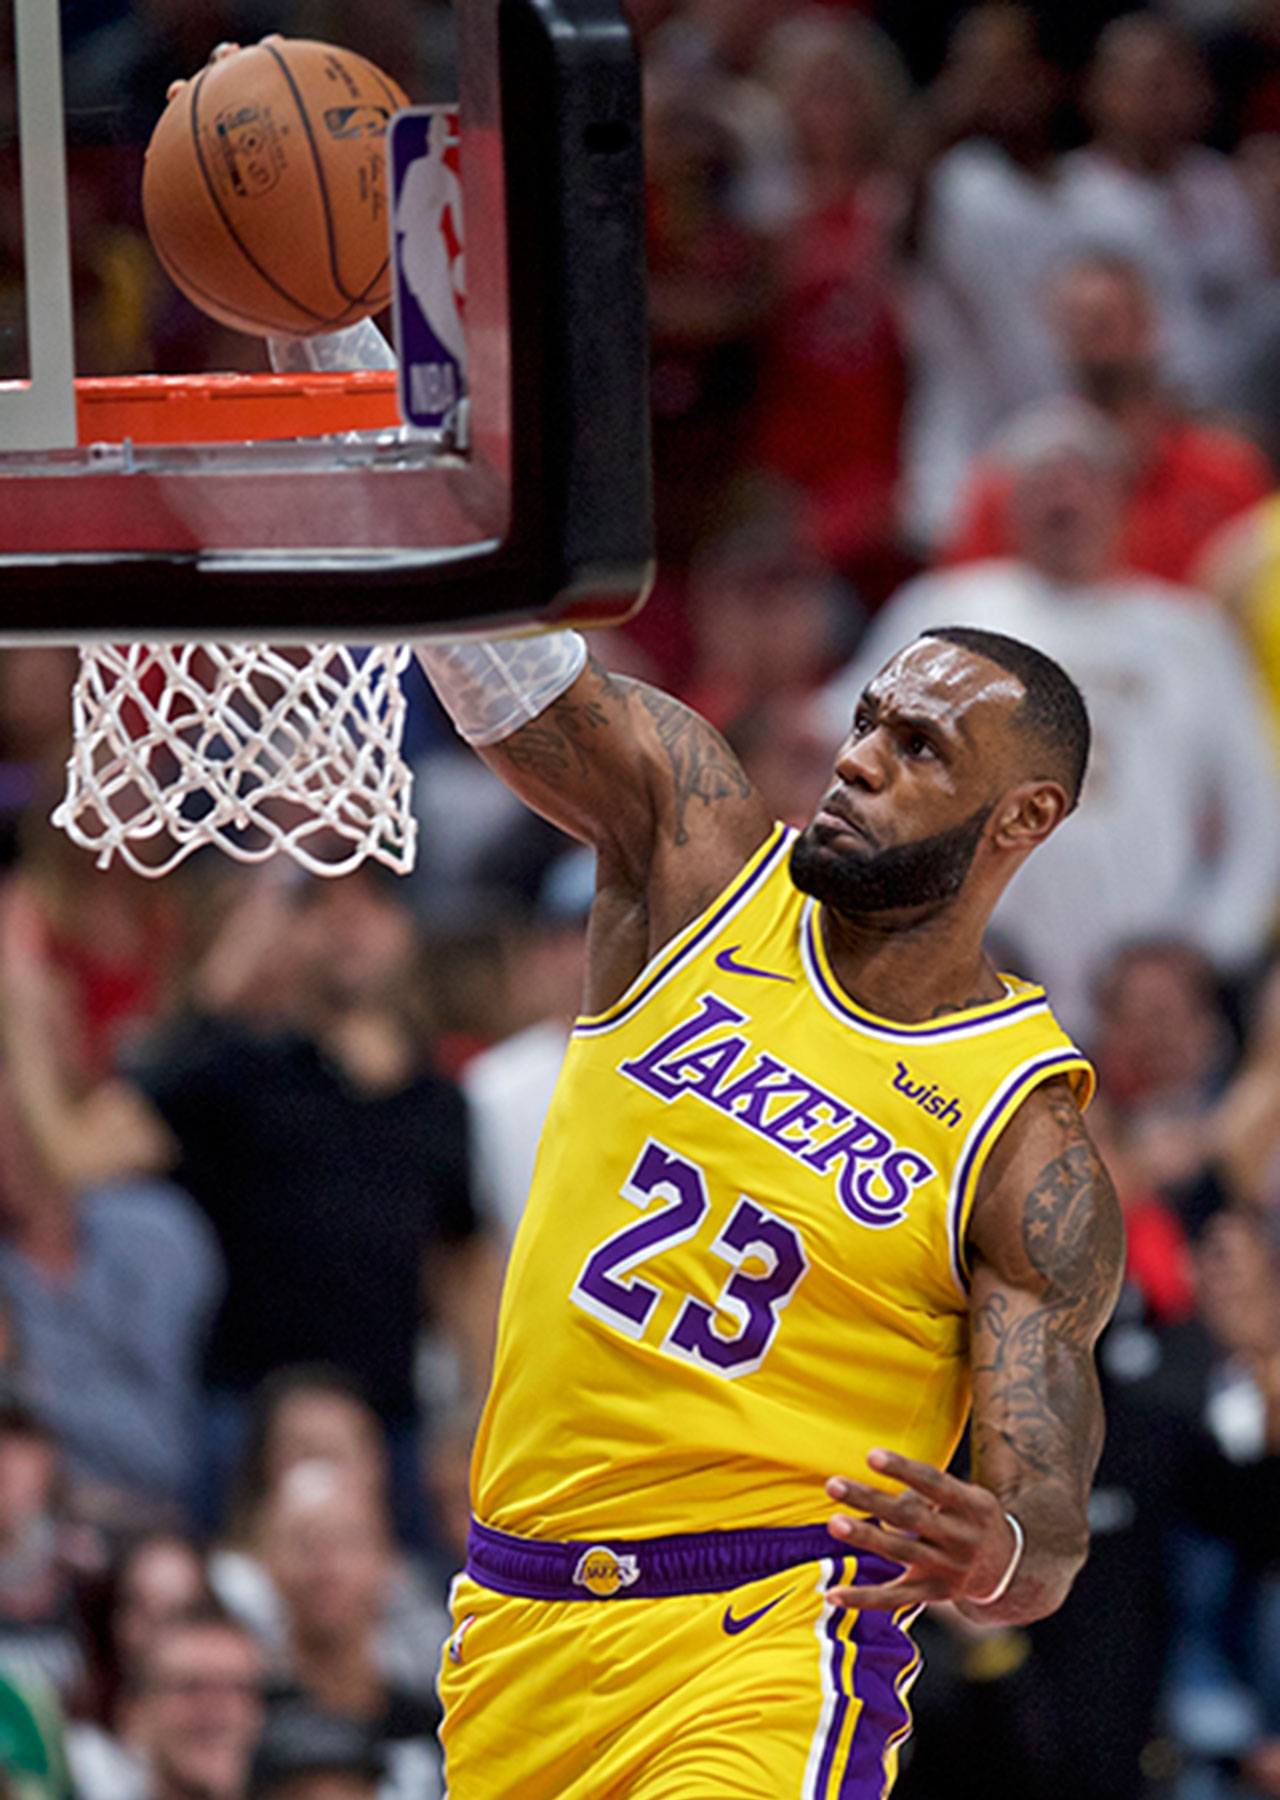 Laker LeBron James dunks during the game against the Trail Blazers in Portland on Thursday, Oct. 18, 2018.